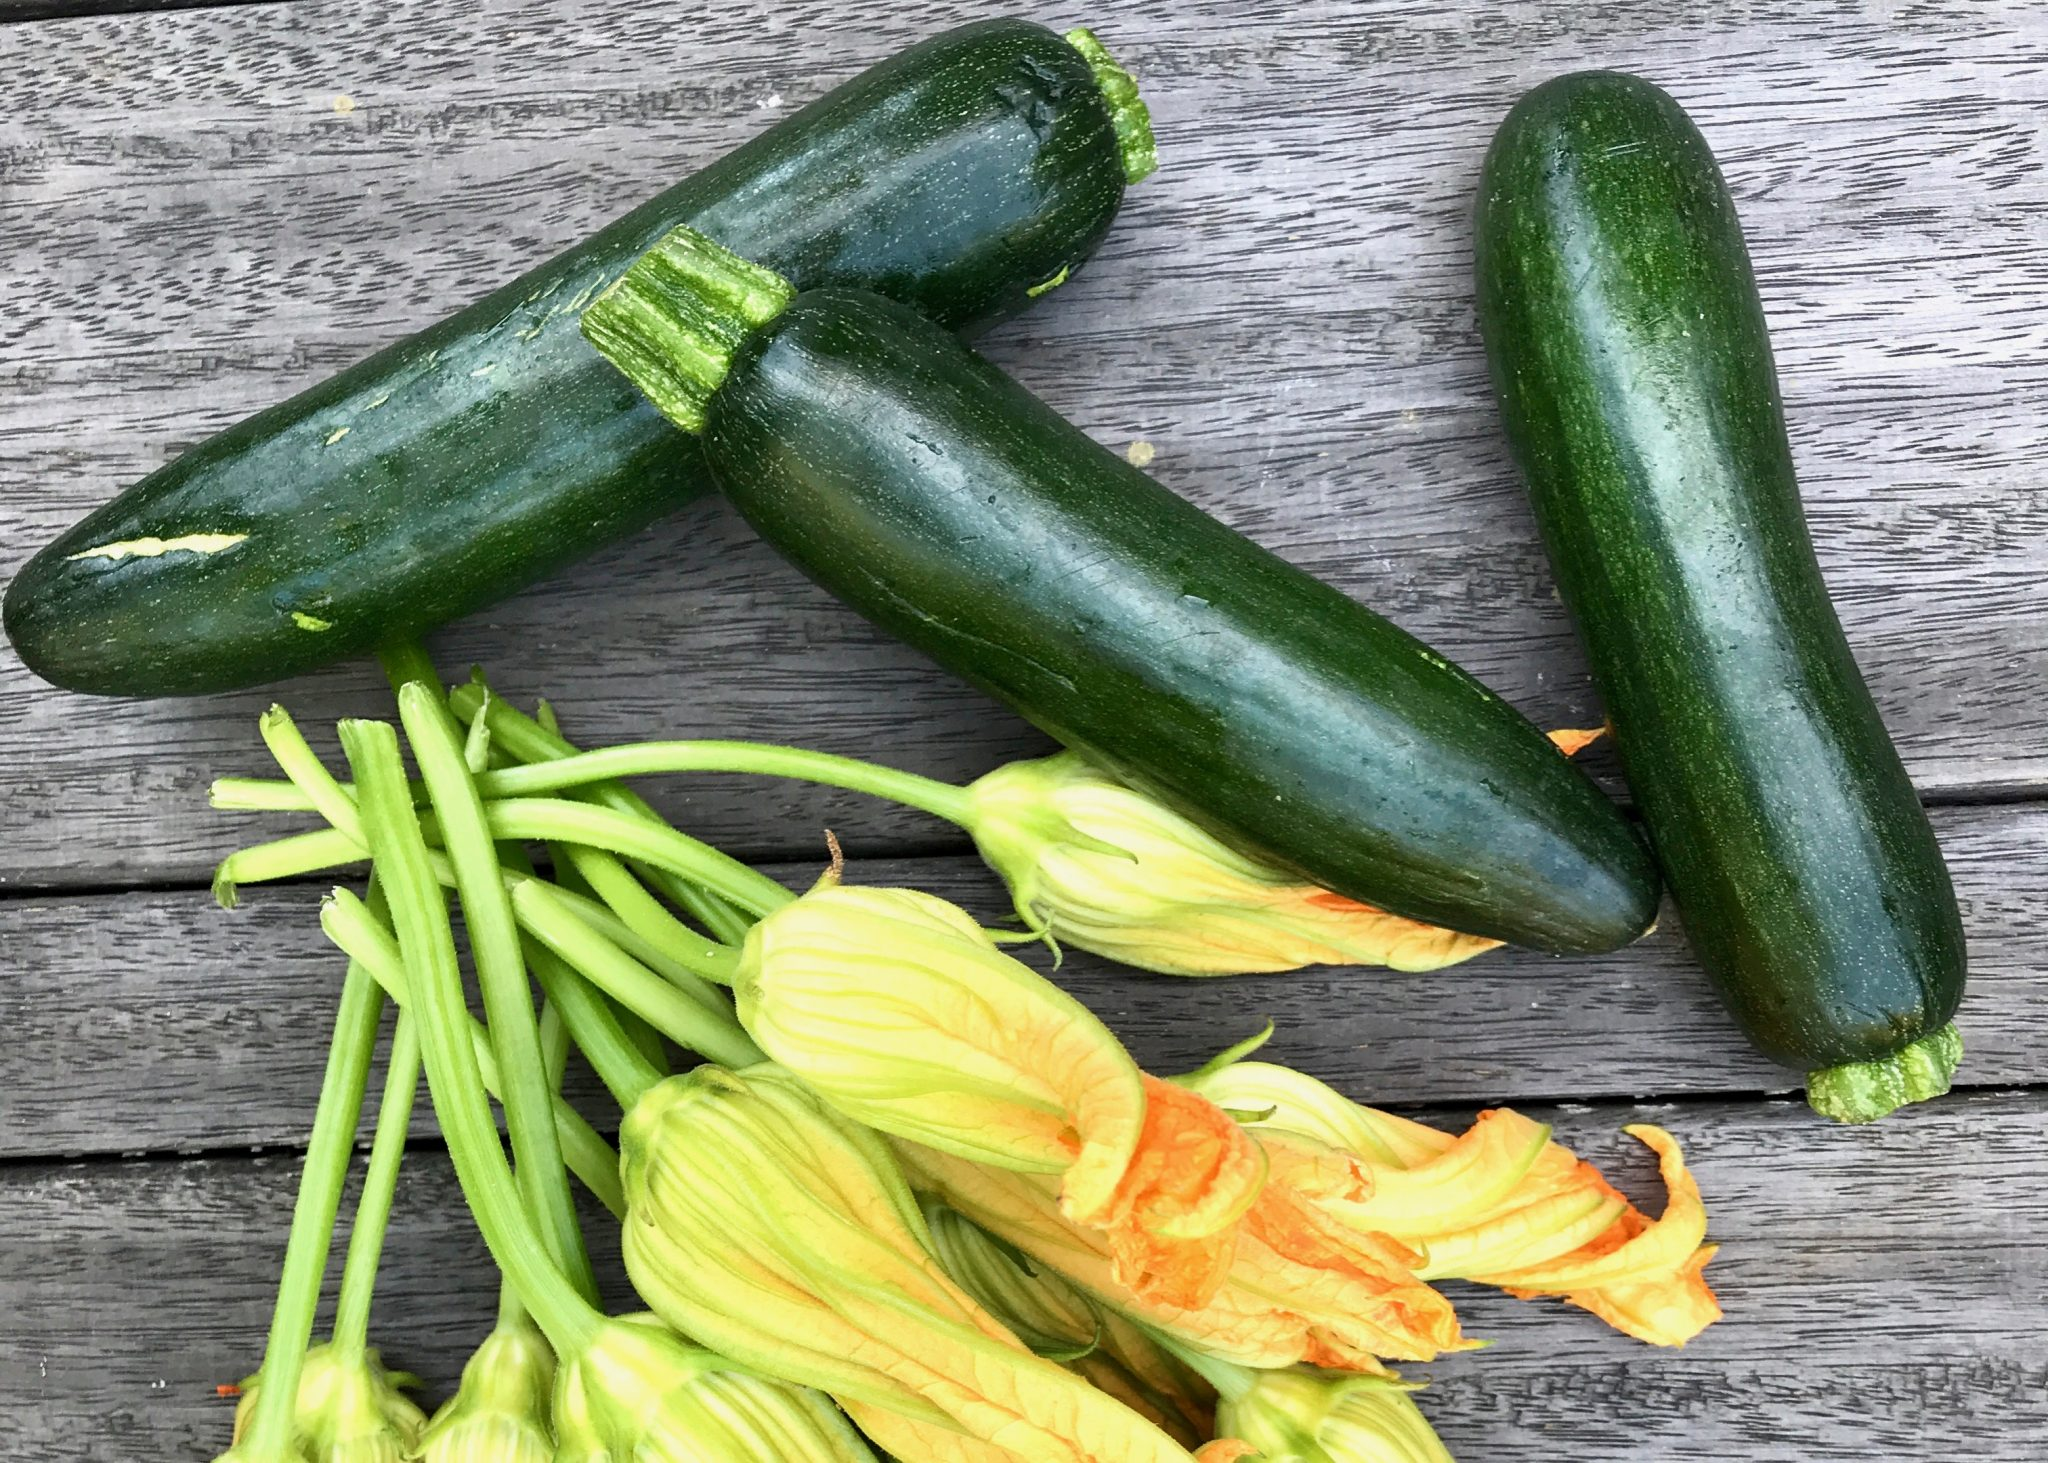 fresh zucchini and zucchini flowers picked from our own yard